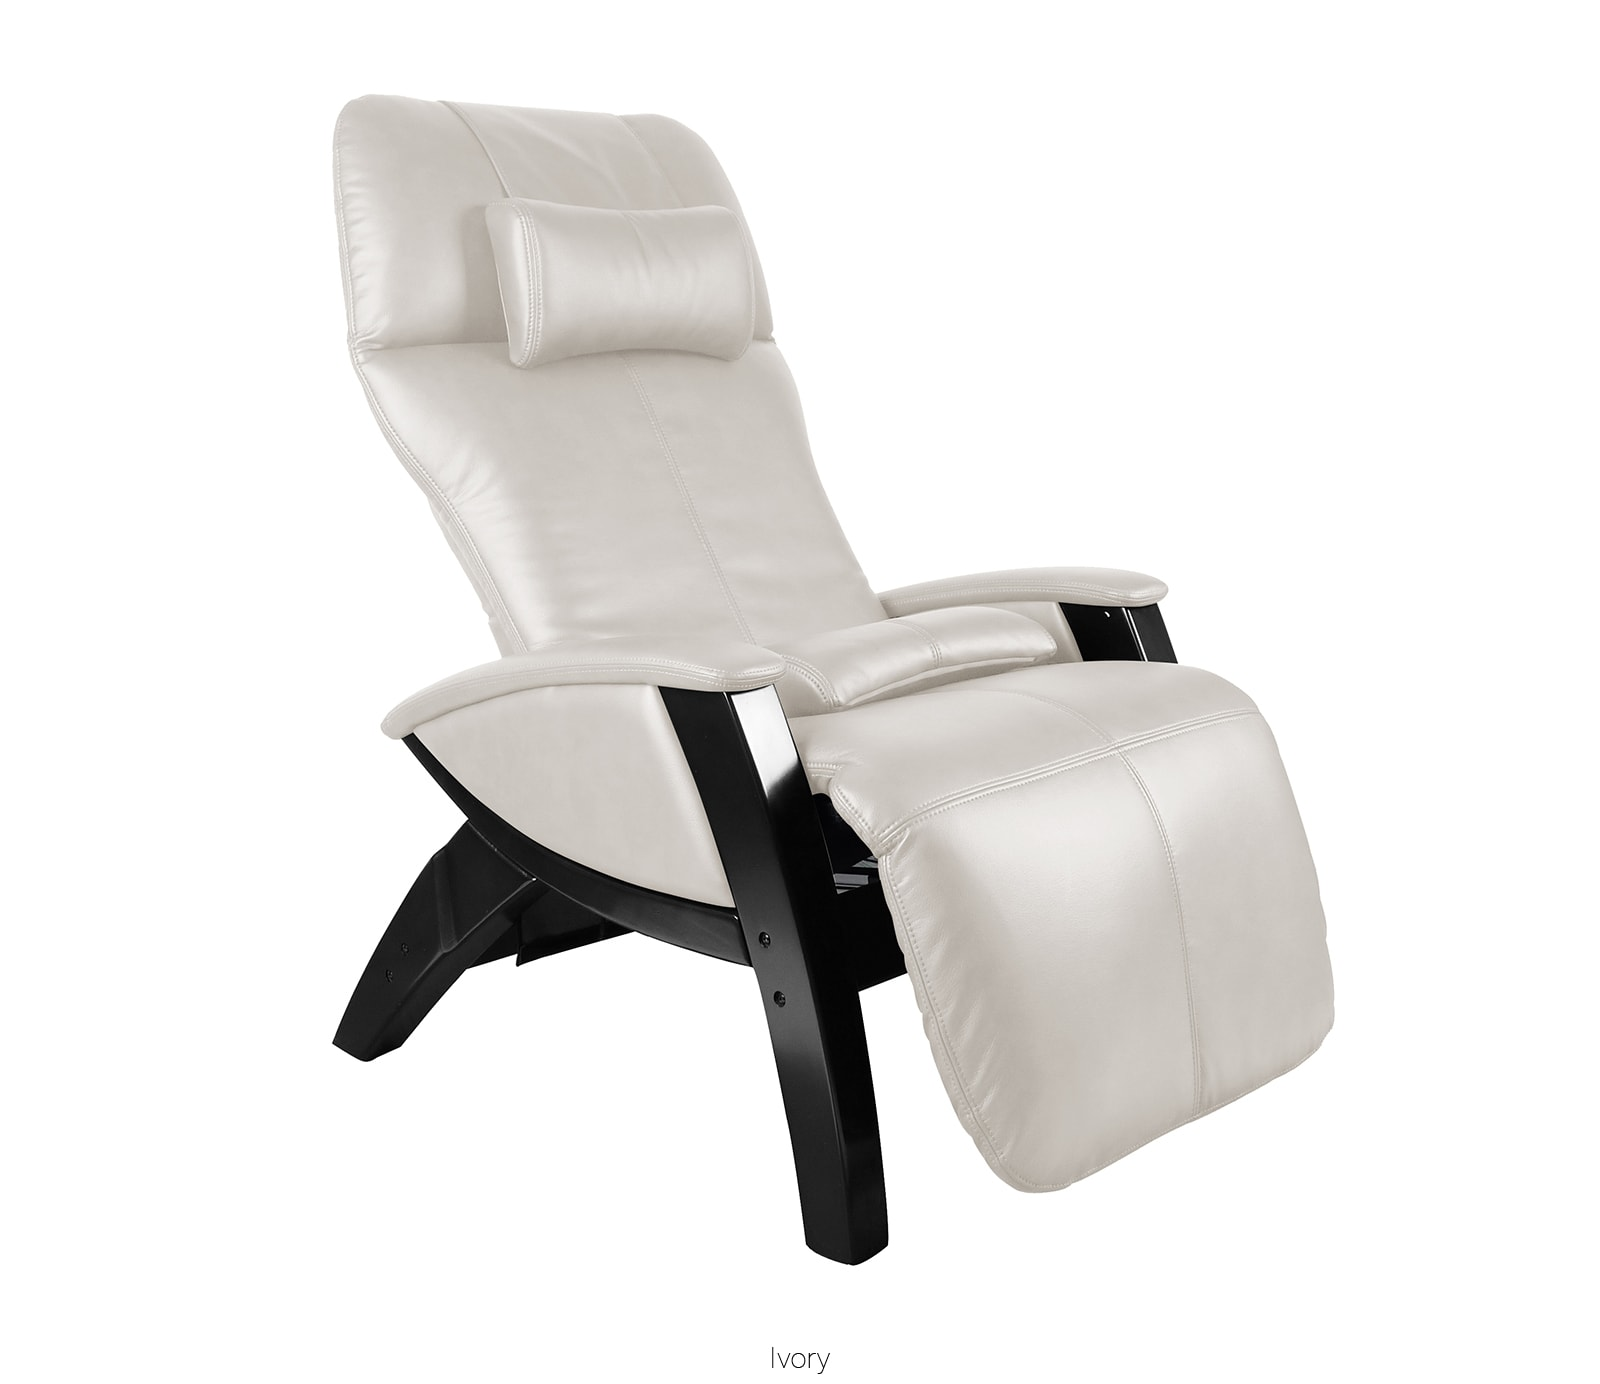 cozzia ag 6000 the zero gravity vibration massage chair cozzia usa